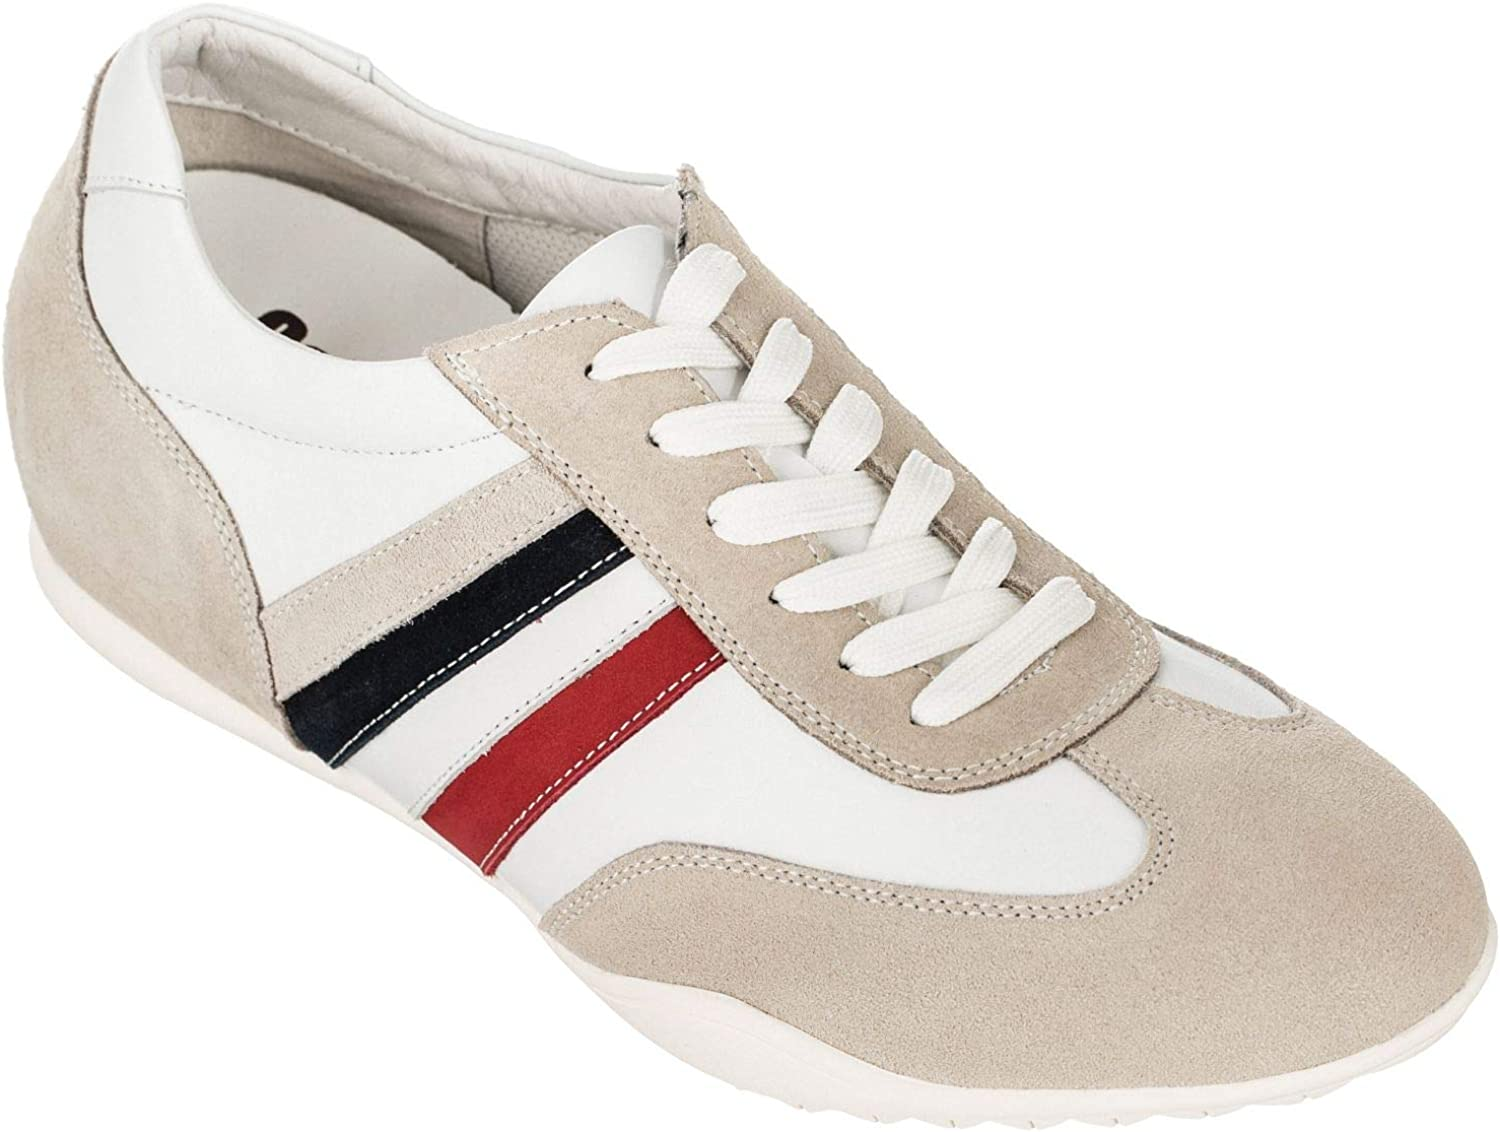 CALDEN Men's Invisible Height Increasing Elevator shoes - Beige and White Suede Leather Super Lightweight Fashion Sneakers - 2.4 Inches Taller - K217202